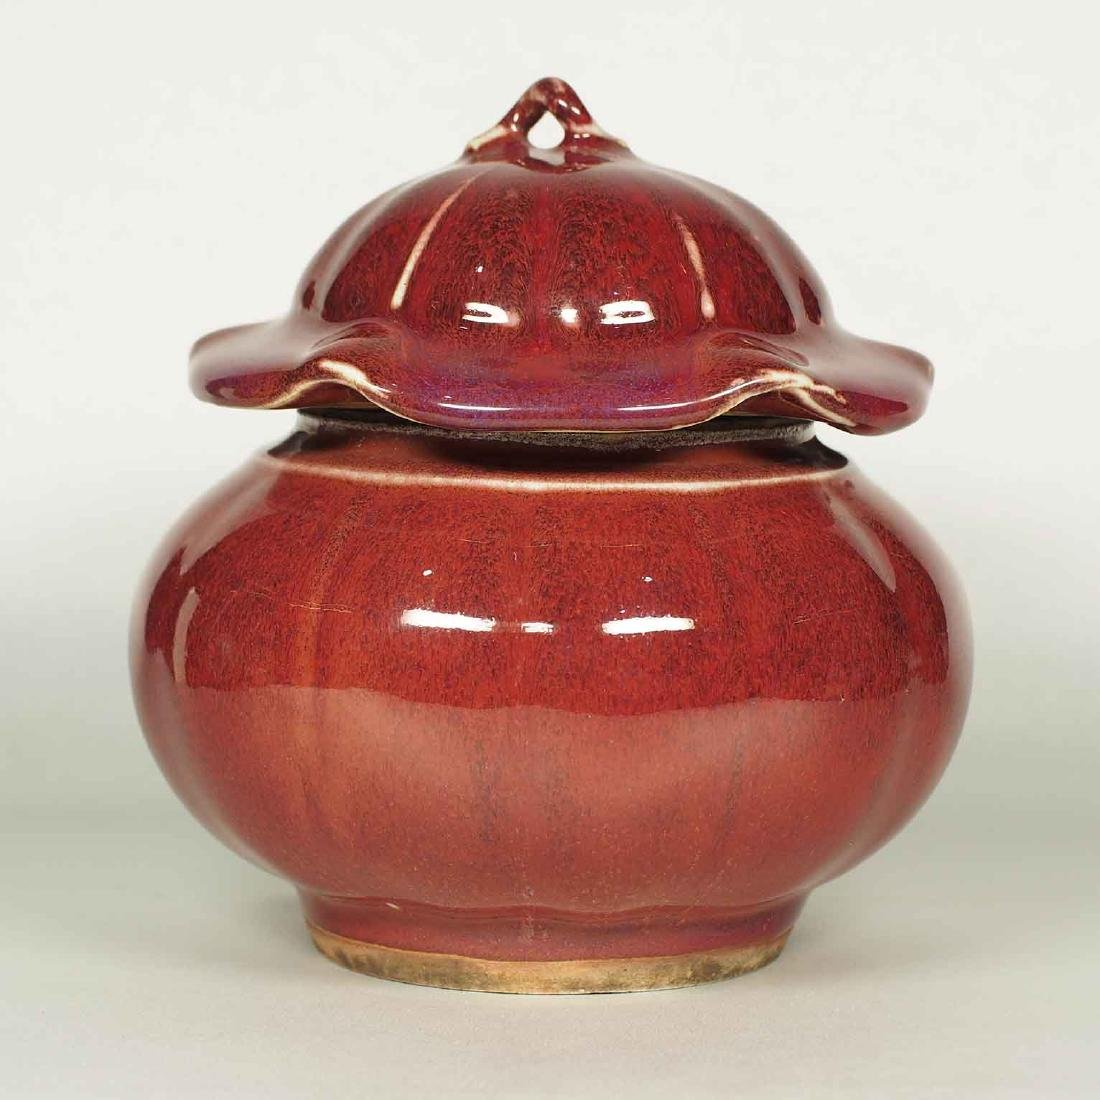 Langyao Hong Lobbed Jar with Lid, 18th Century Qing